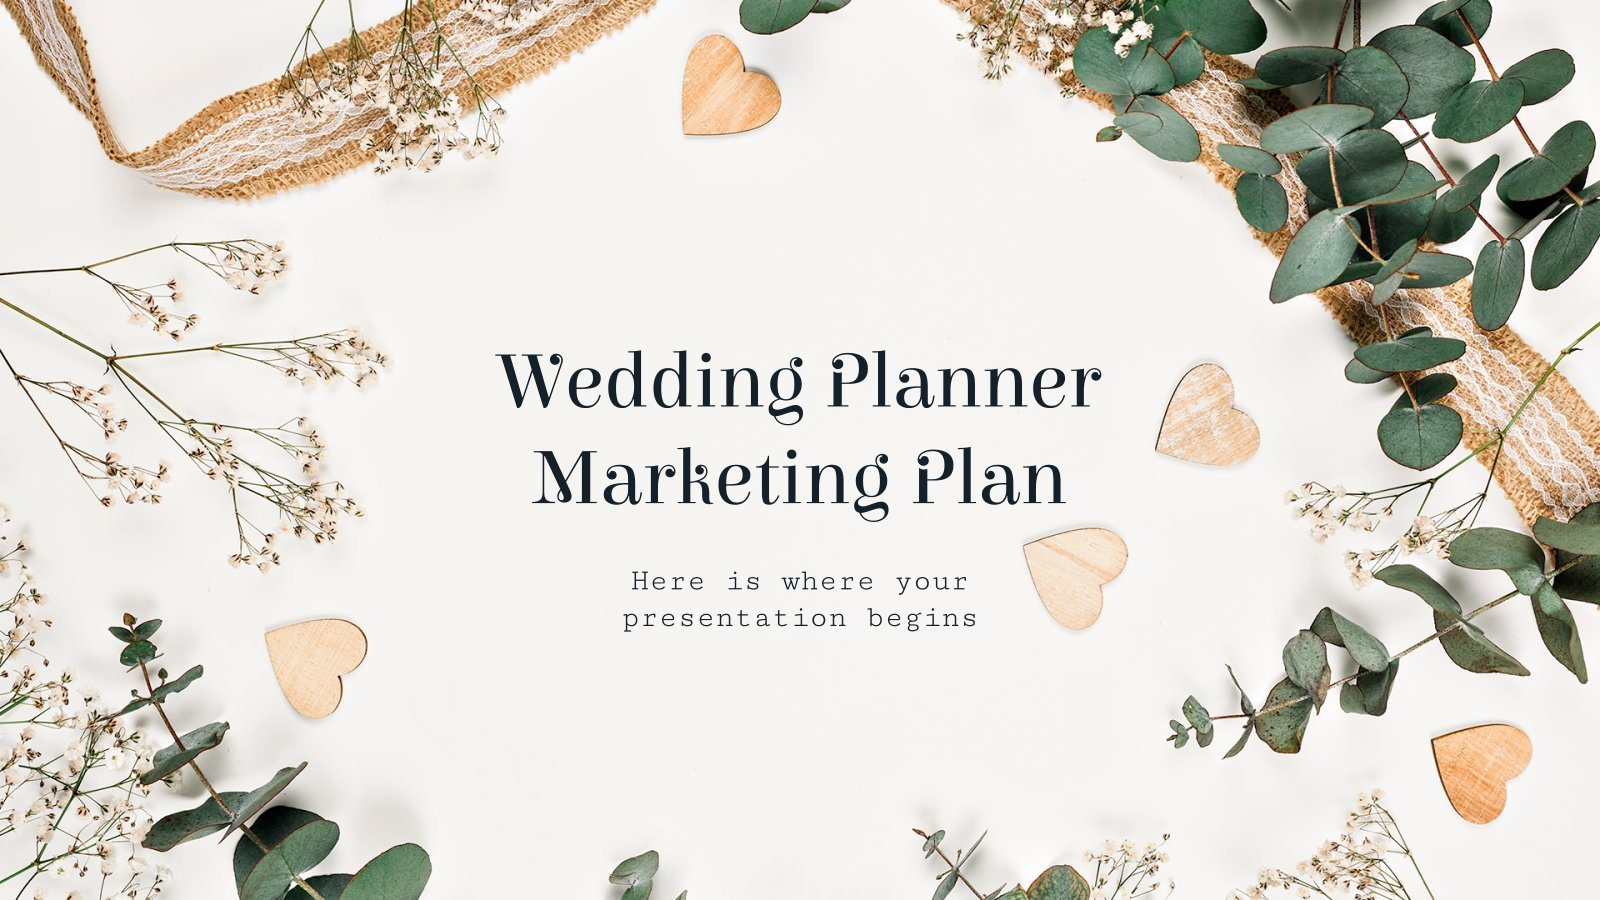 Wedding Planner Marketing Plan presentation template